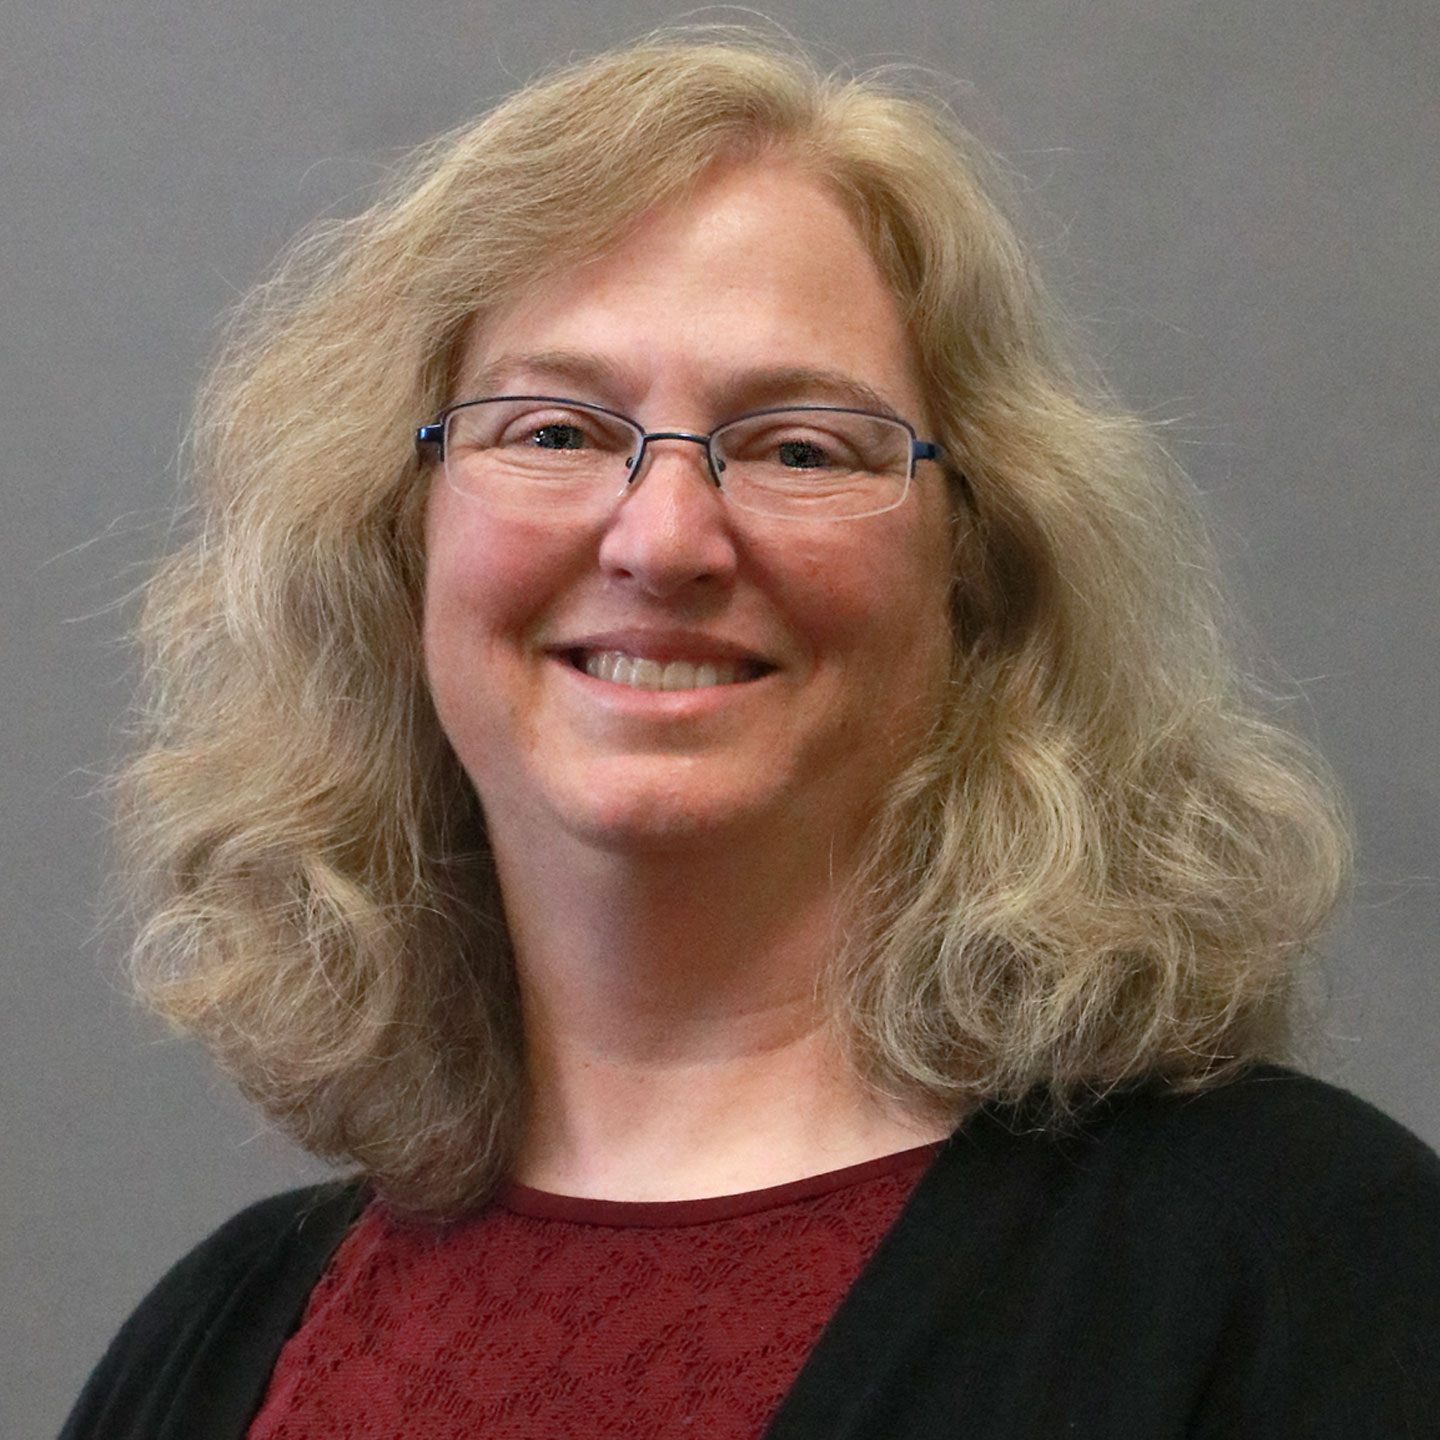 Theresa S. Watson, MS, Instructor of Mathematics